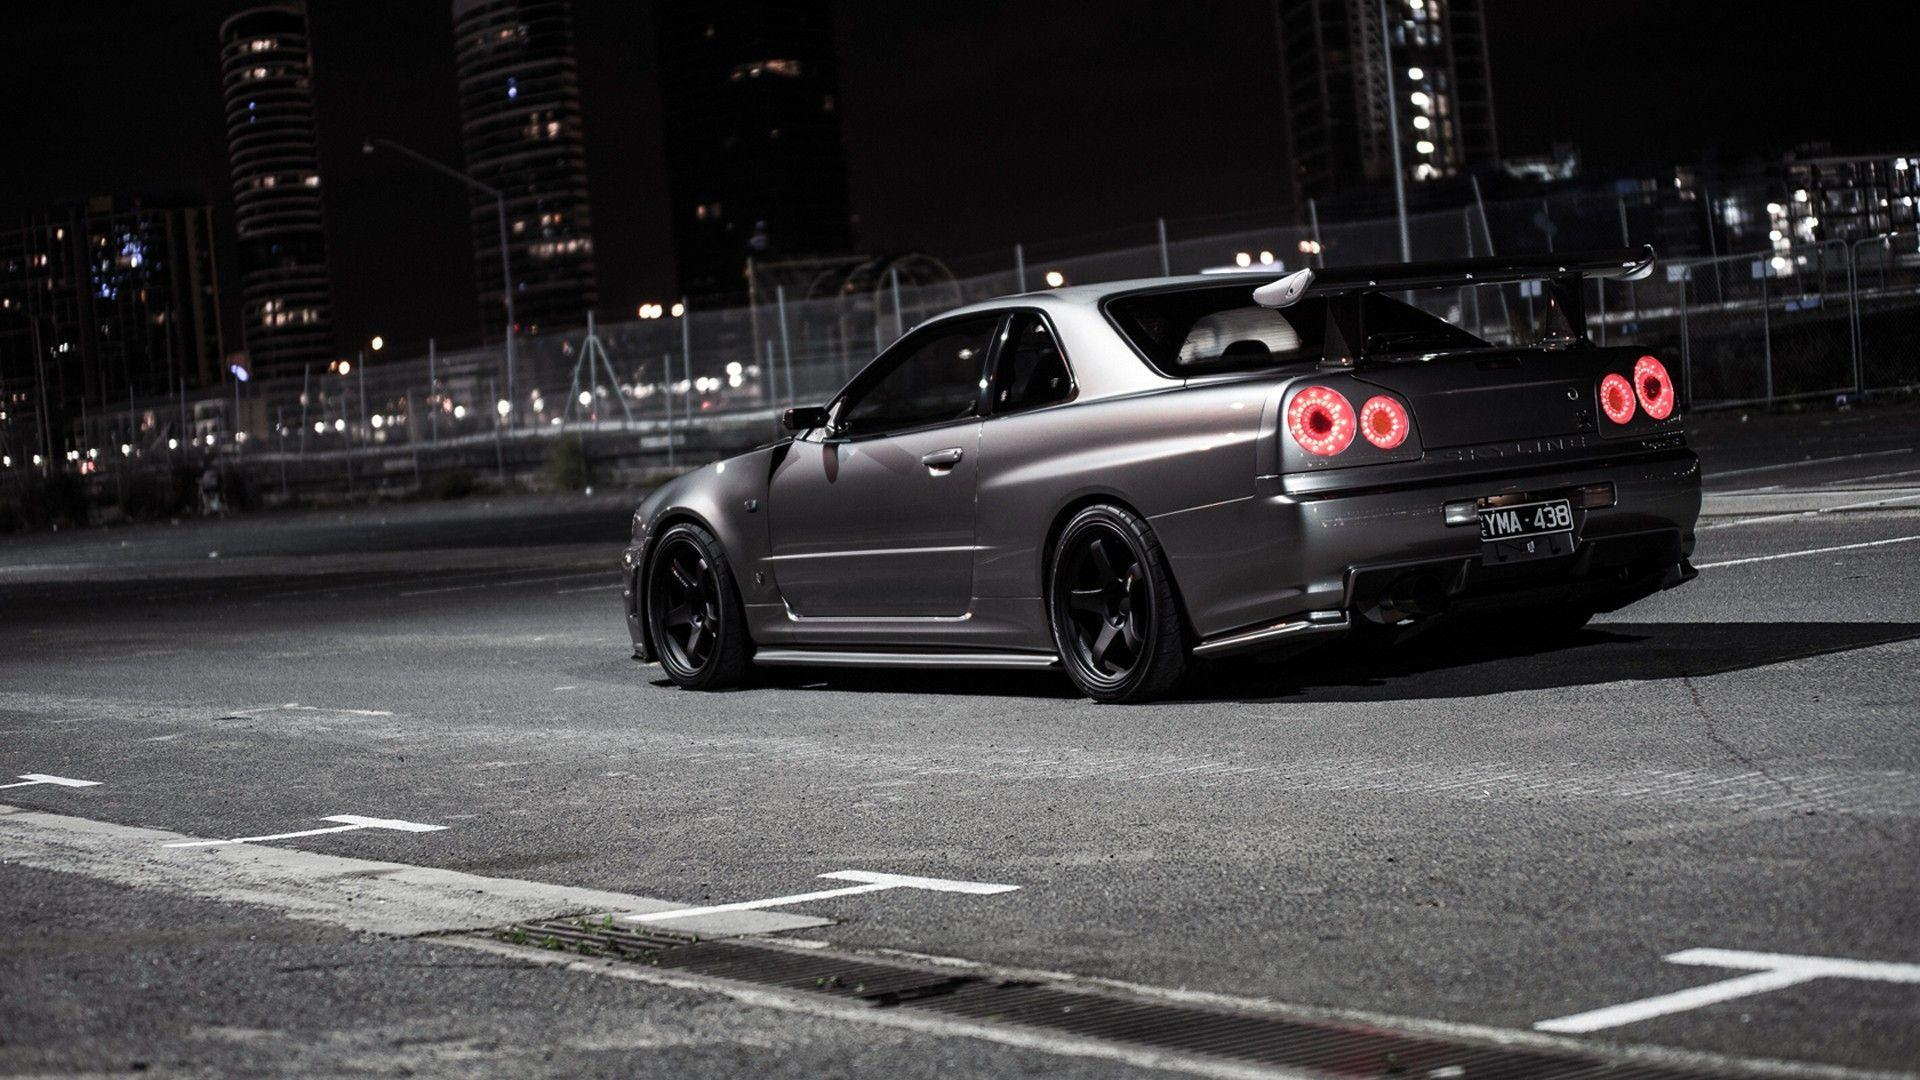 R34 Gtr Wallpapers Wallpaper Cave